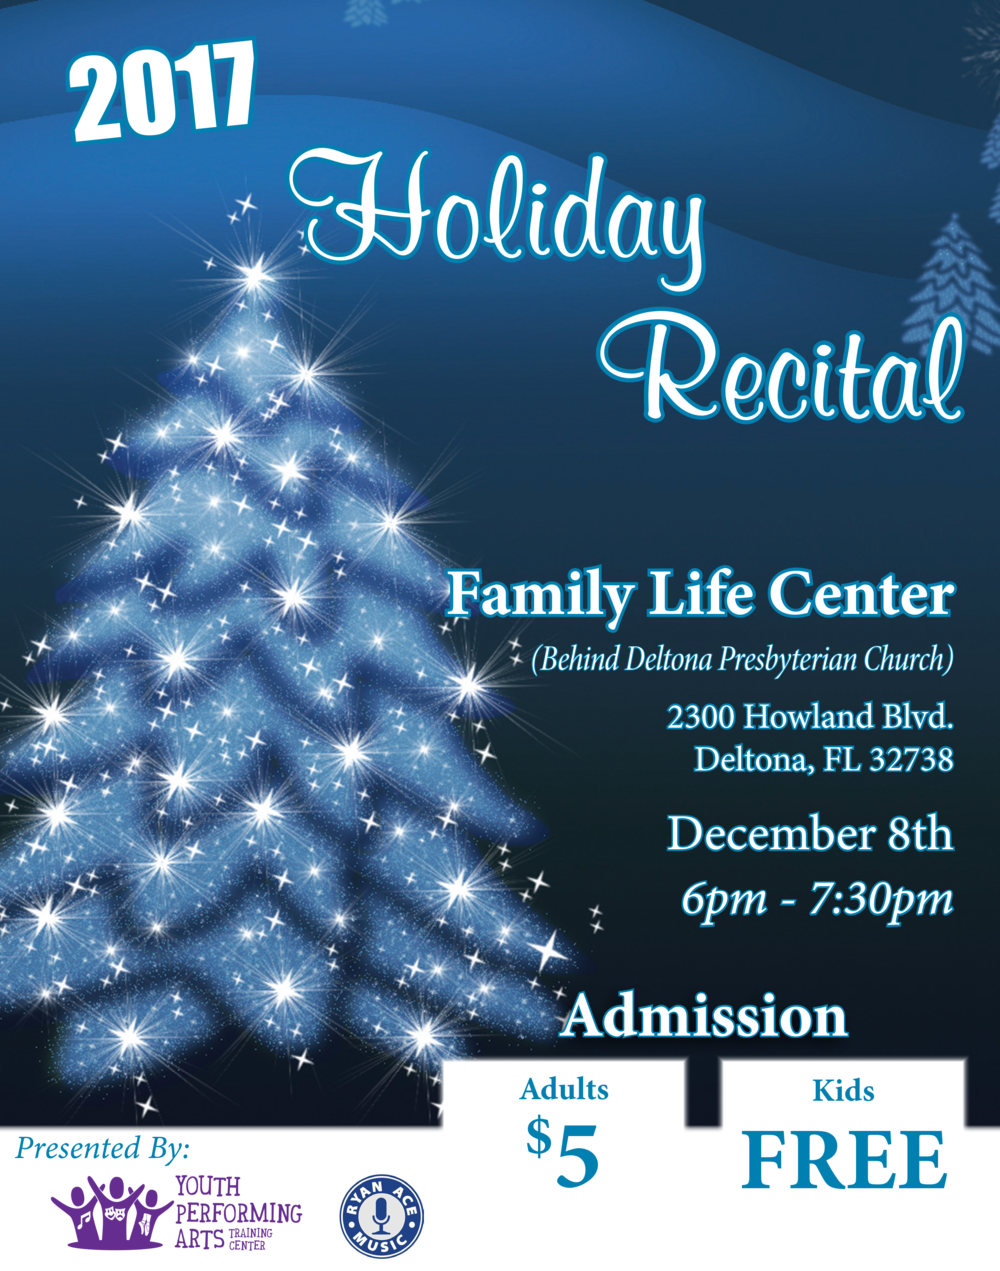 Holiday-Recital-Flyer.png